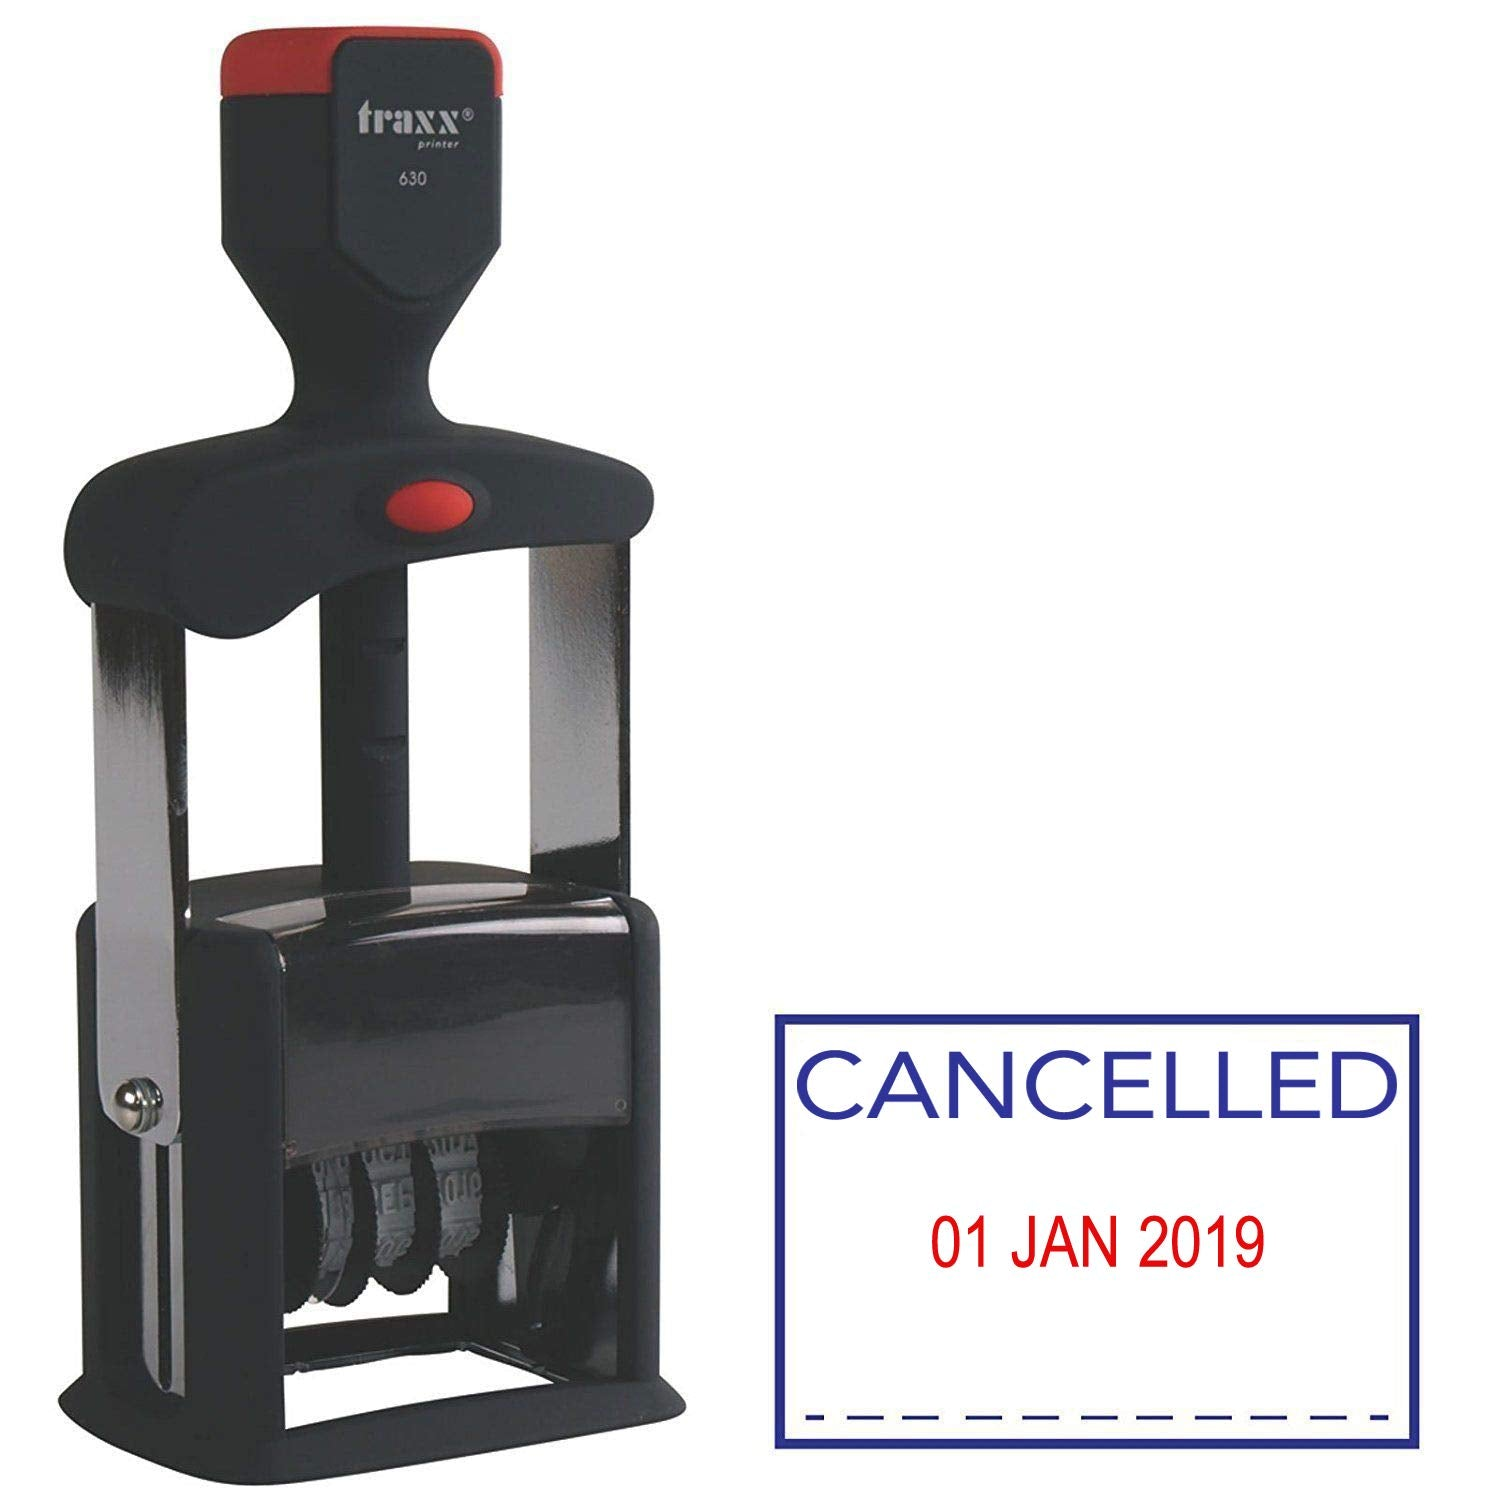 Traxx JF630 Stock Date Stamp -  CANCELLED